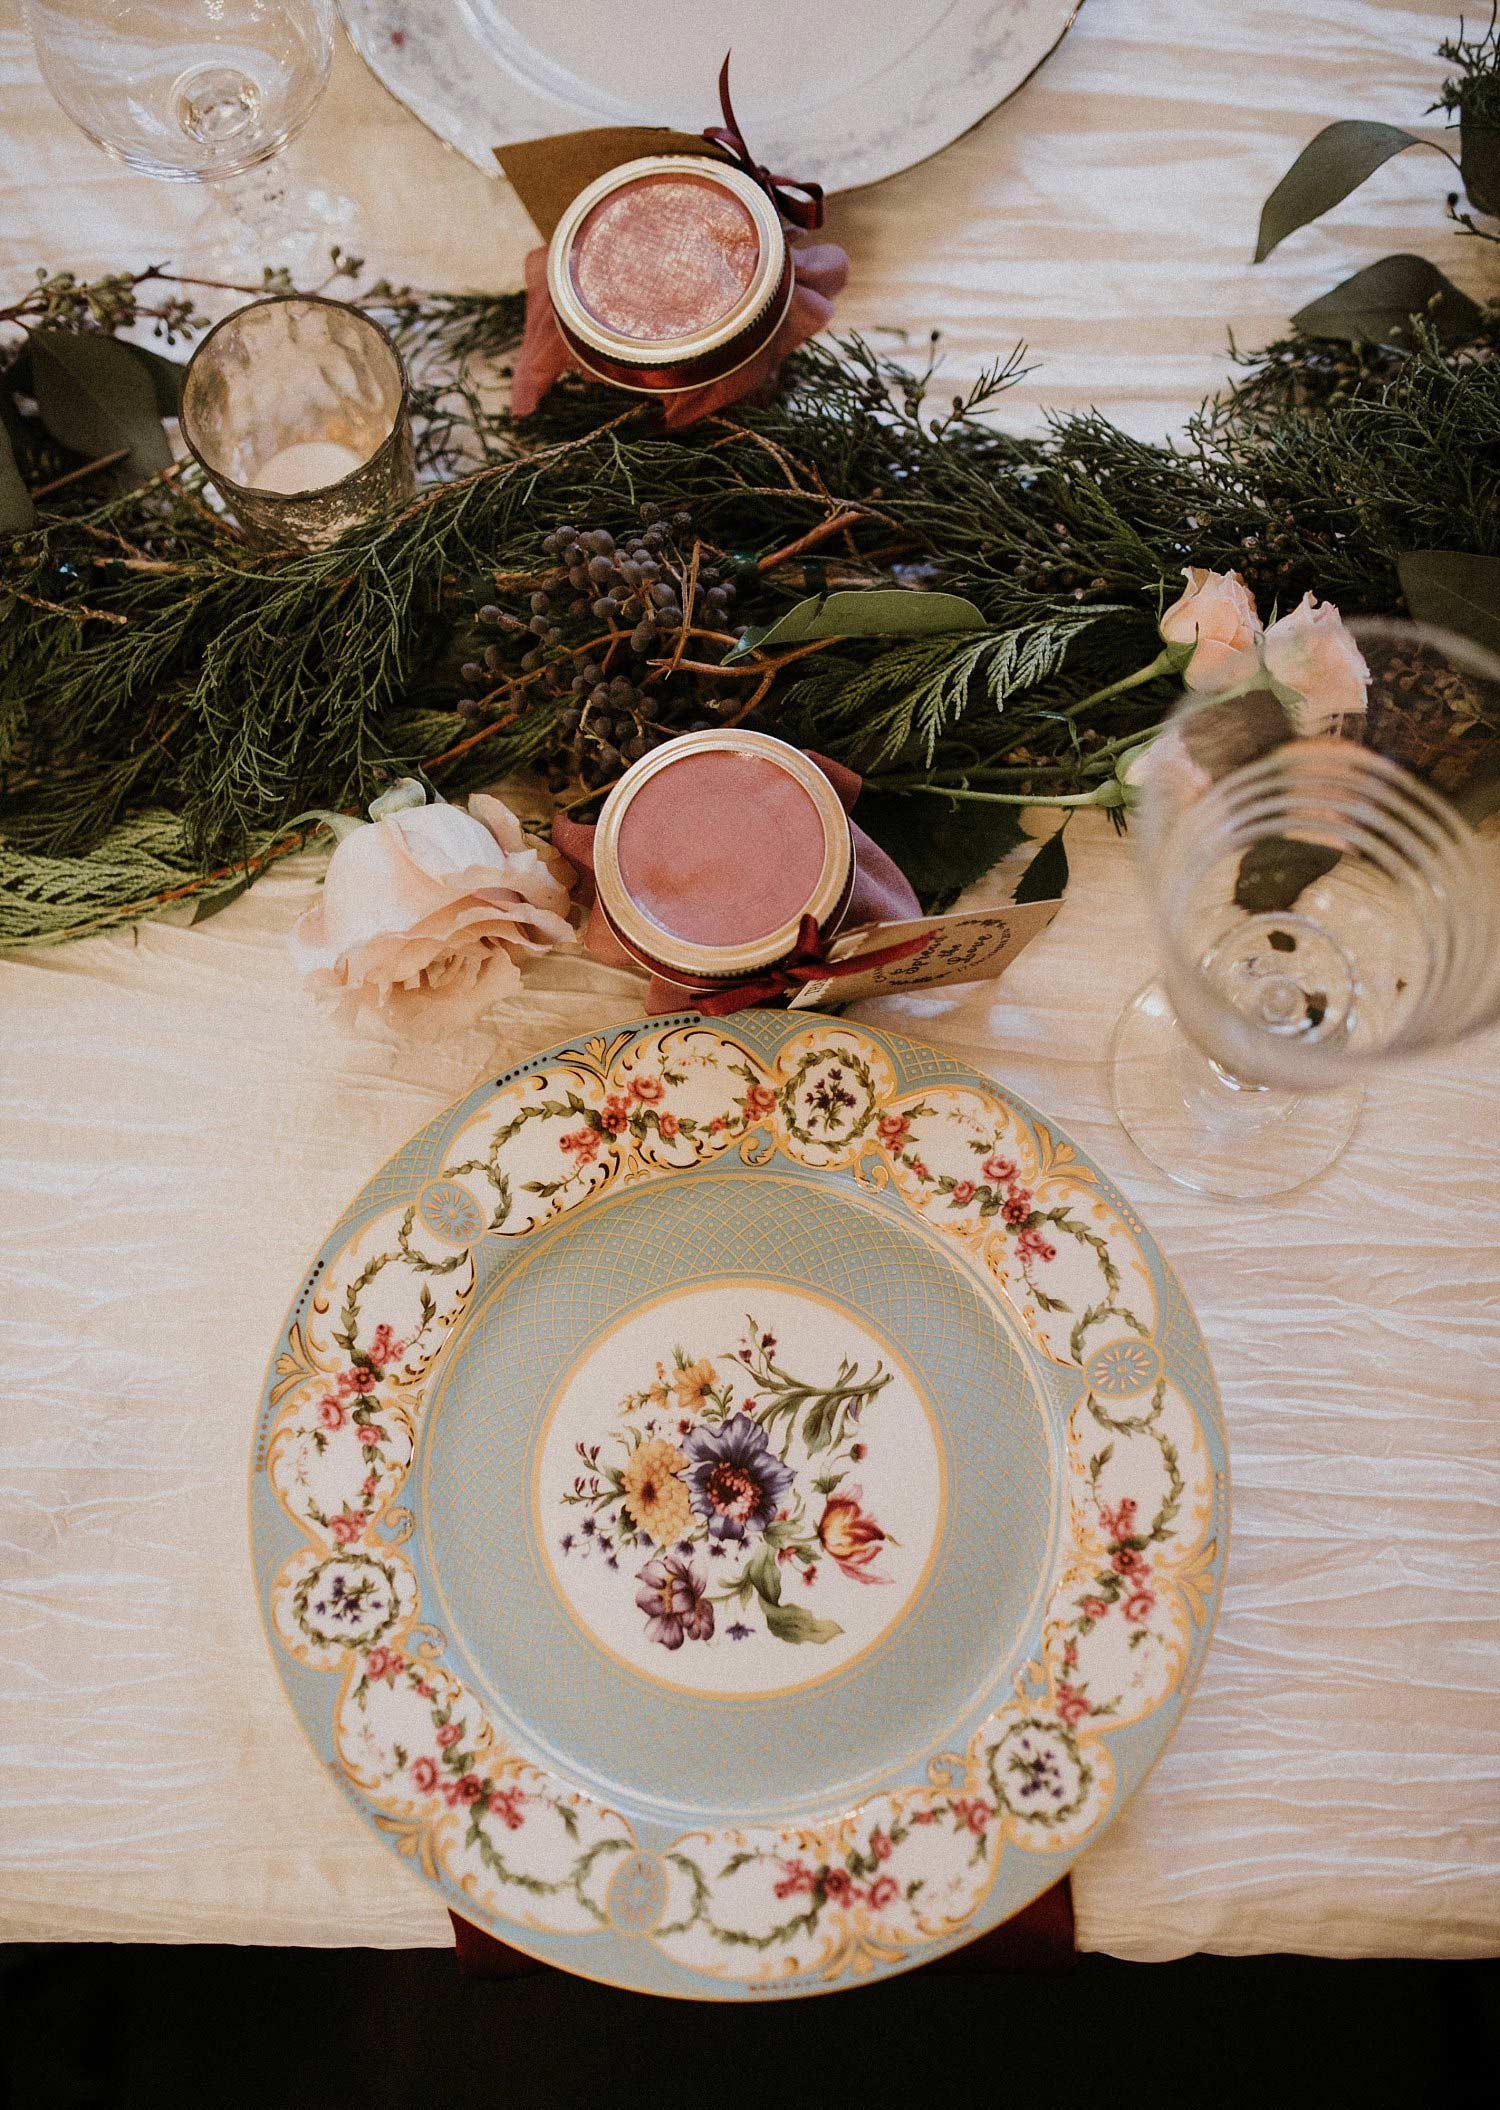 Hollow Hill Farm Event Center Wedding vintage china place setting with jam jar favor